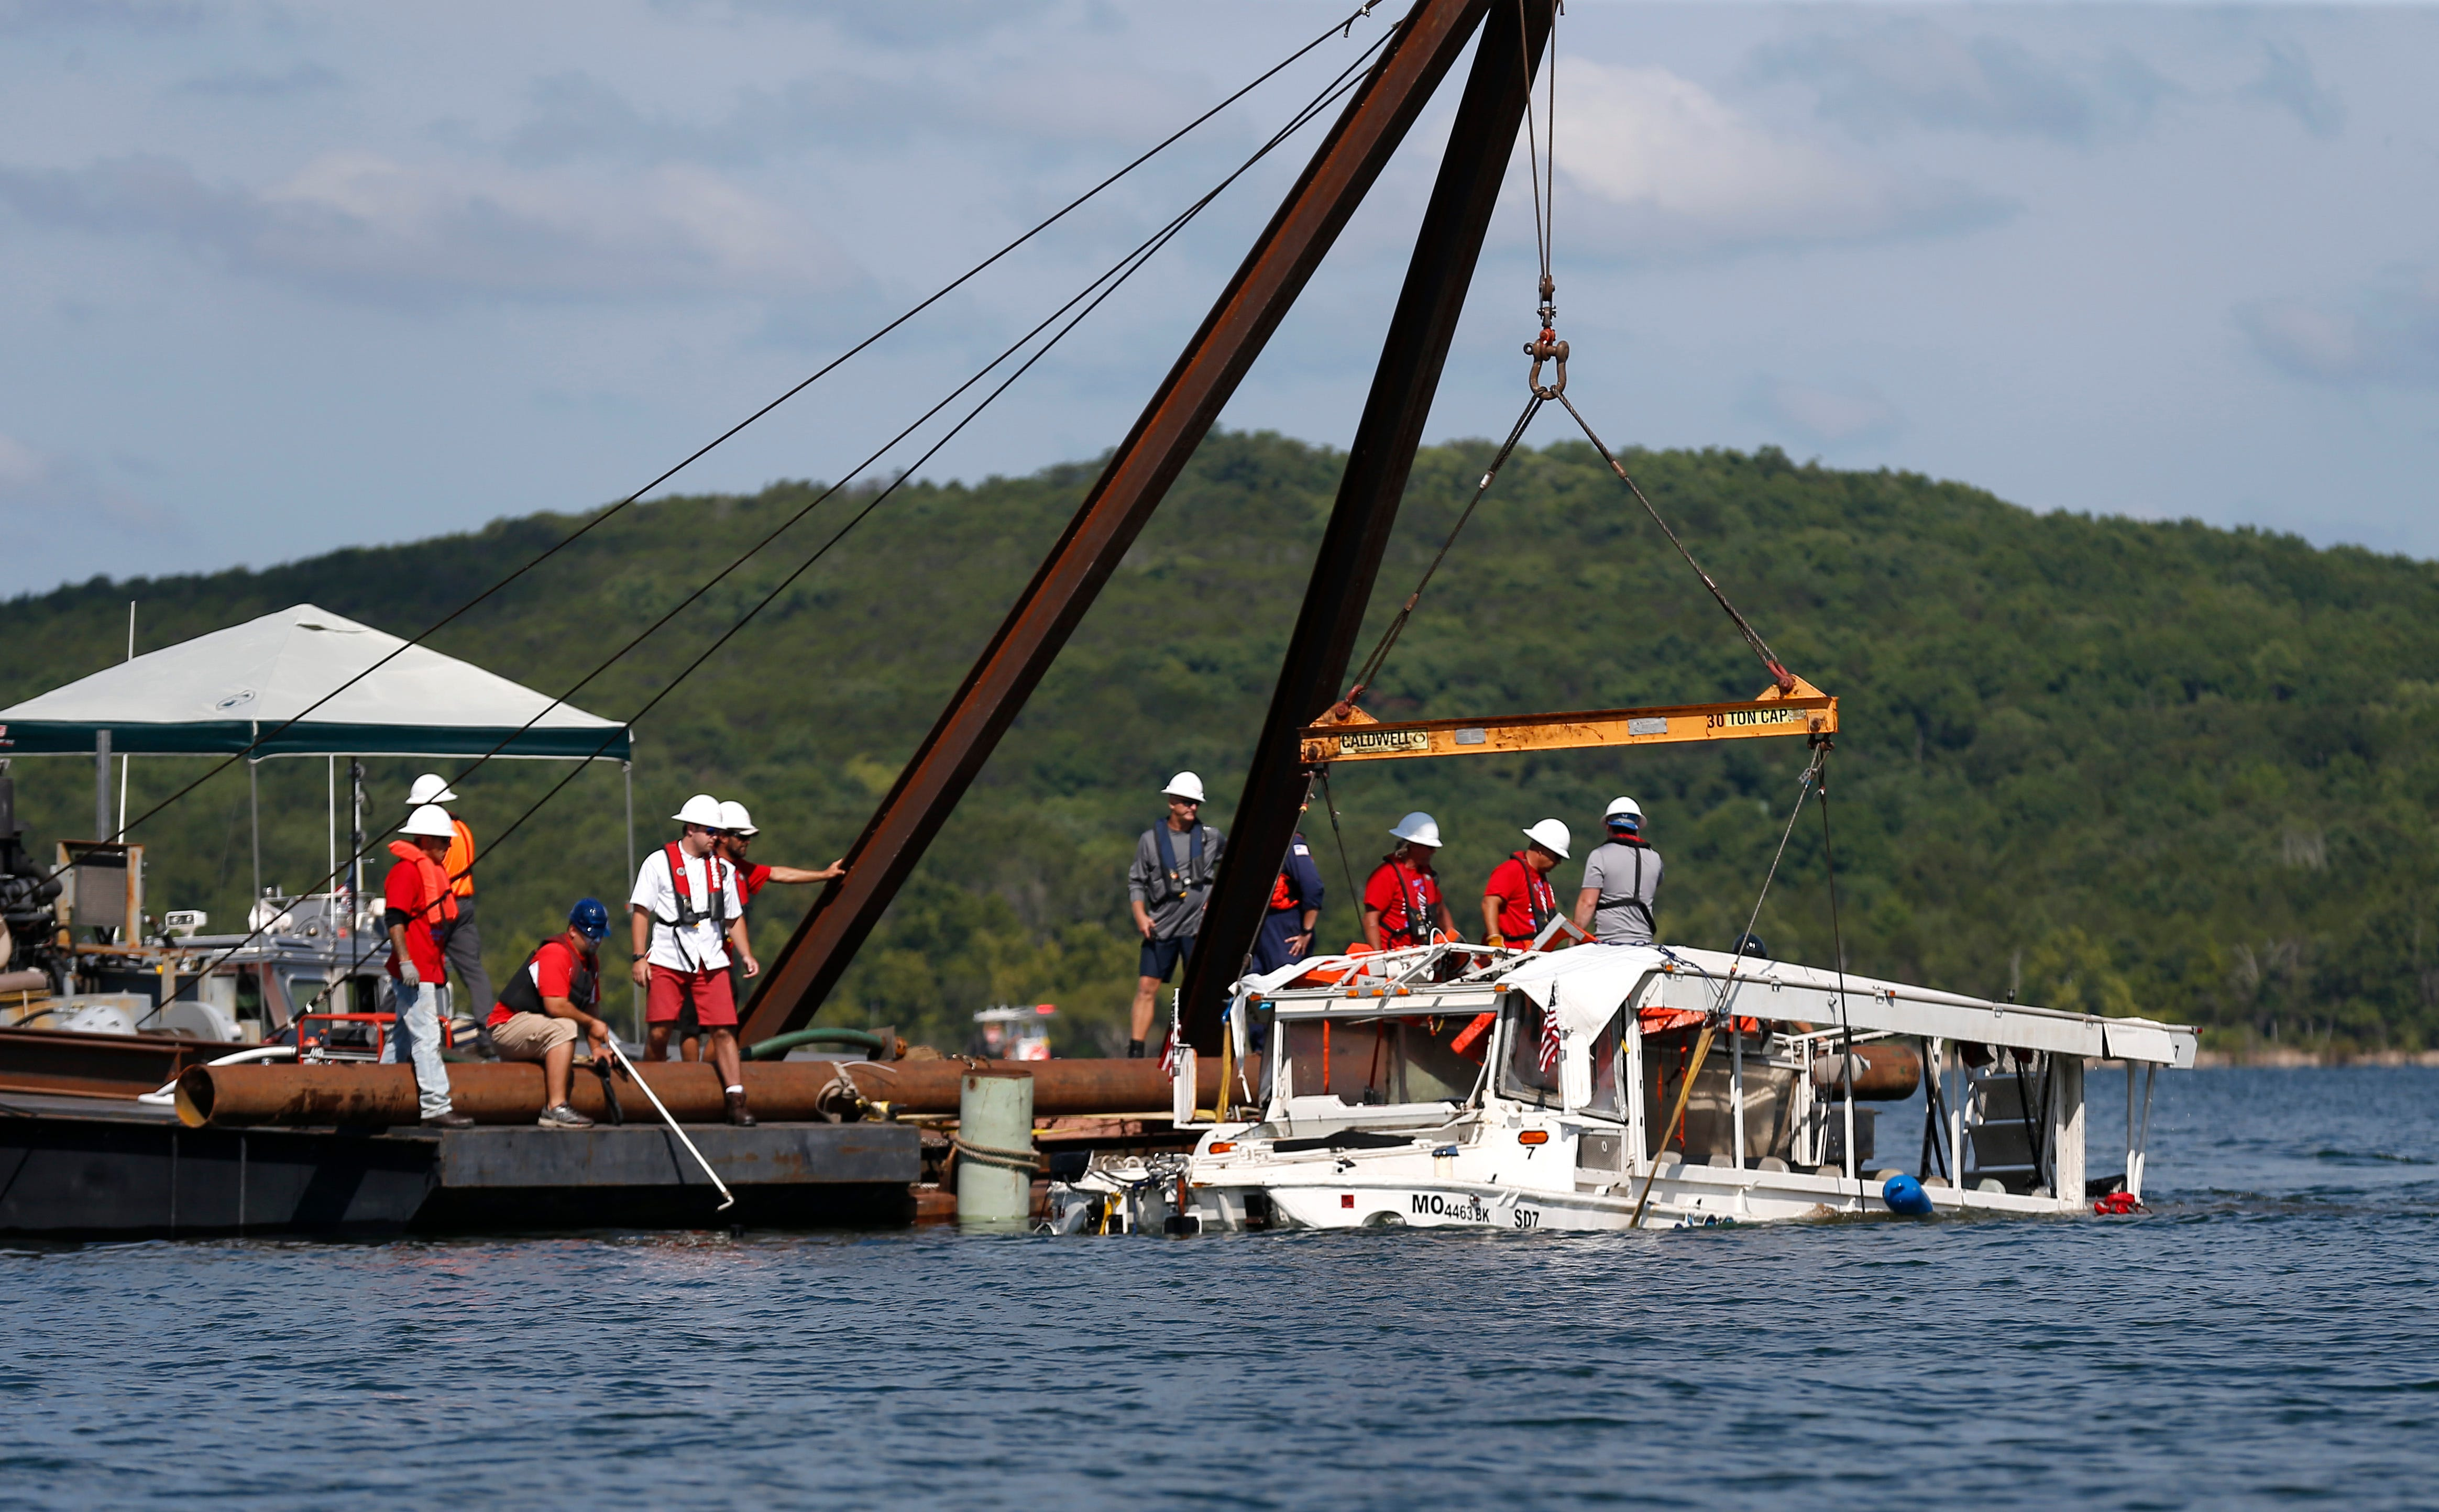 Branson duck boat captain took note of the weather before deadly voyage, NTSB says